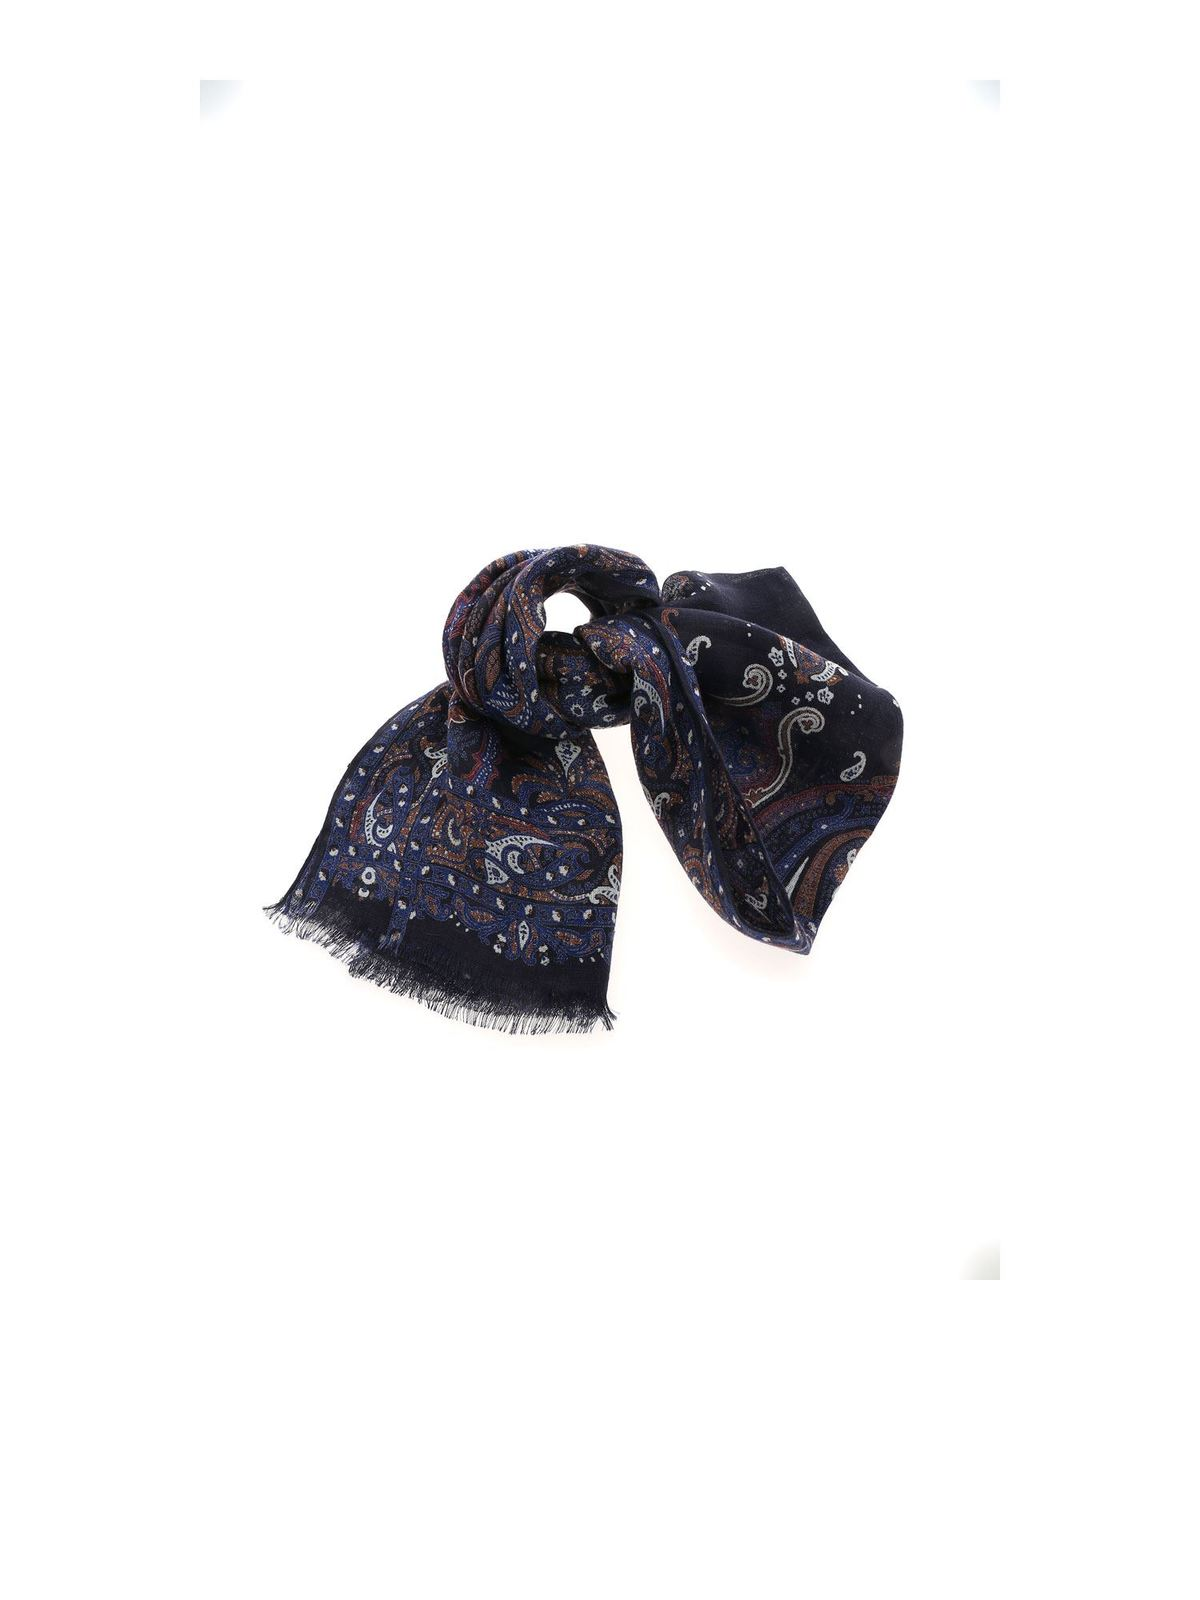 Etro Accessories CONTRASTING FLORAL PATTERN PASHMINA IN BLUE